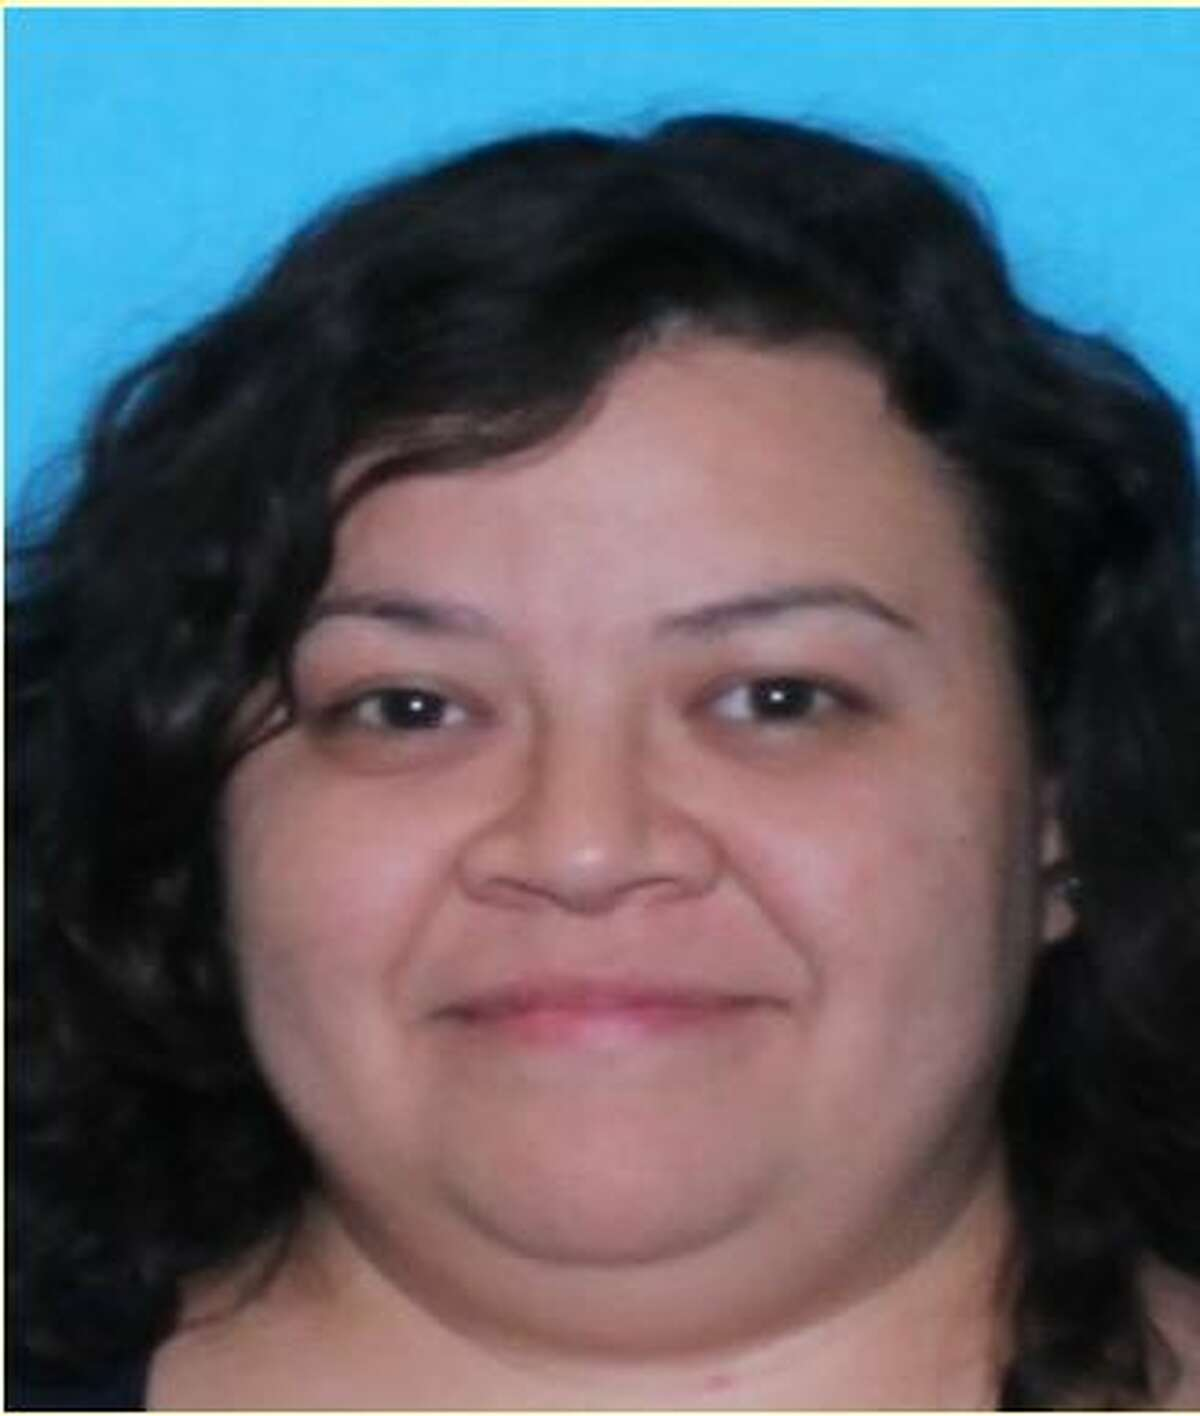 Kimberly Marie Midayof Conroe is wanted by the Montgomery County Sheriff's Office on a charge of aggregate theft. Her warrant is active as of Friday, Sept. 22.